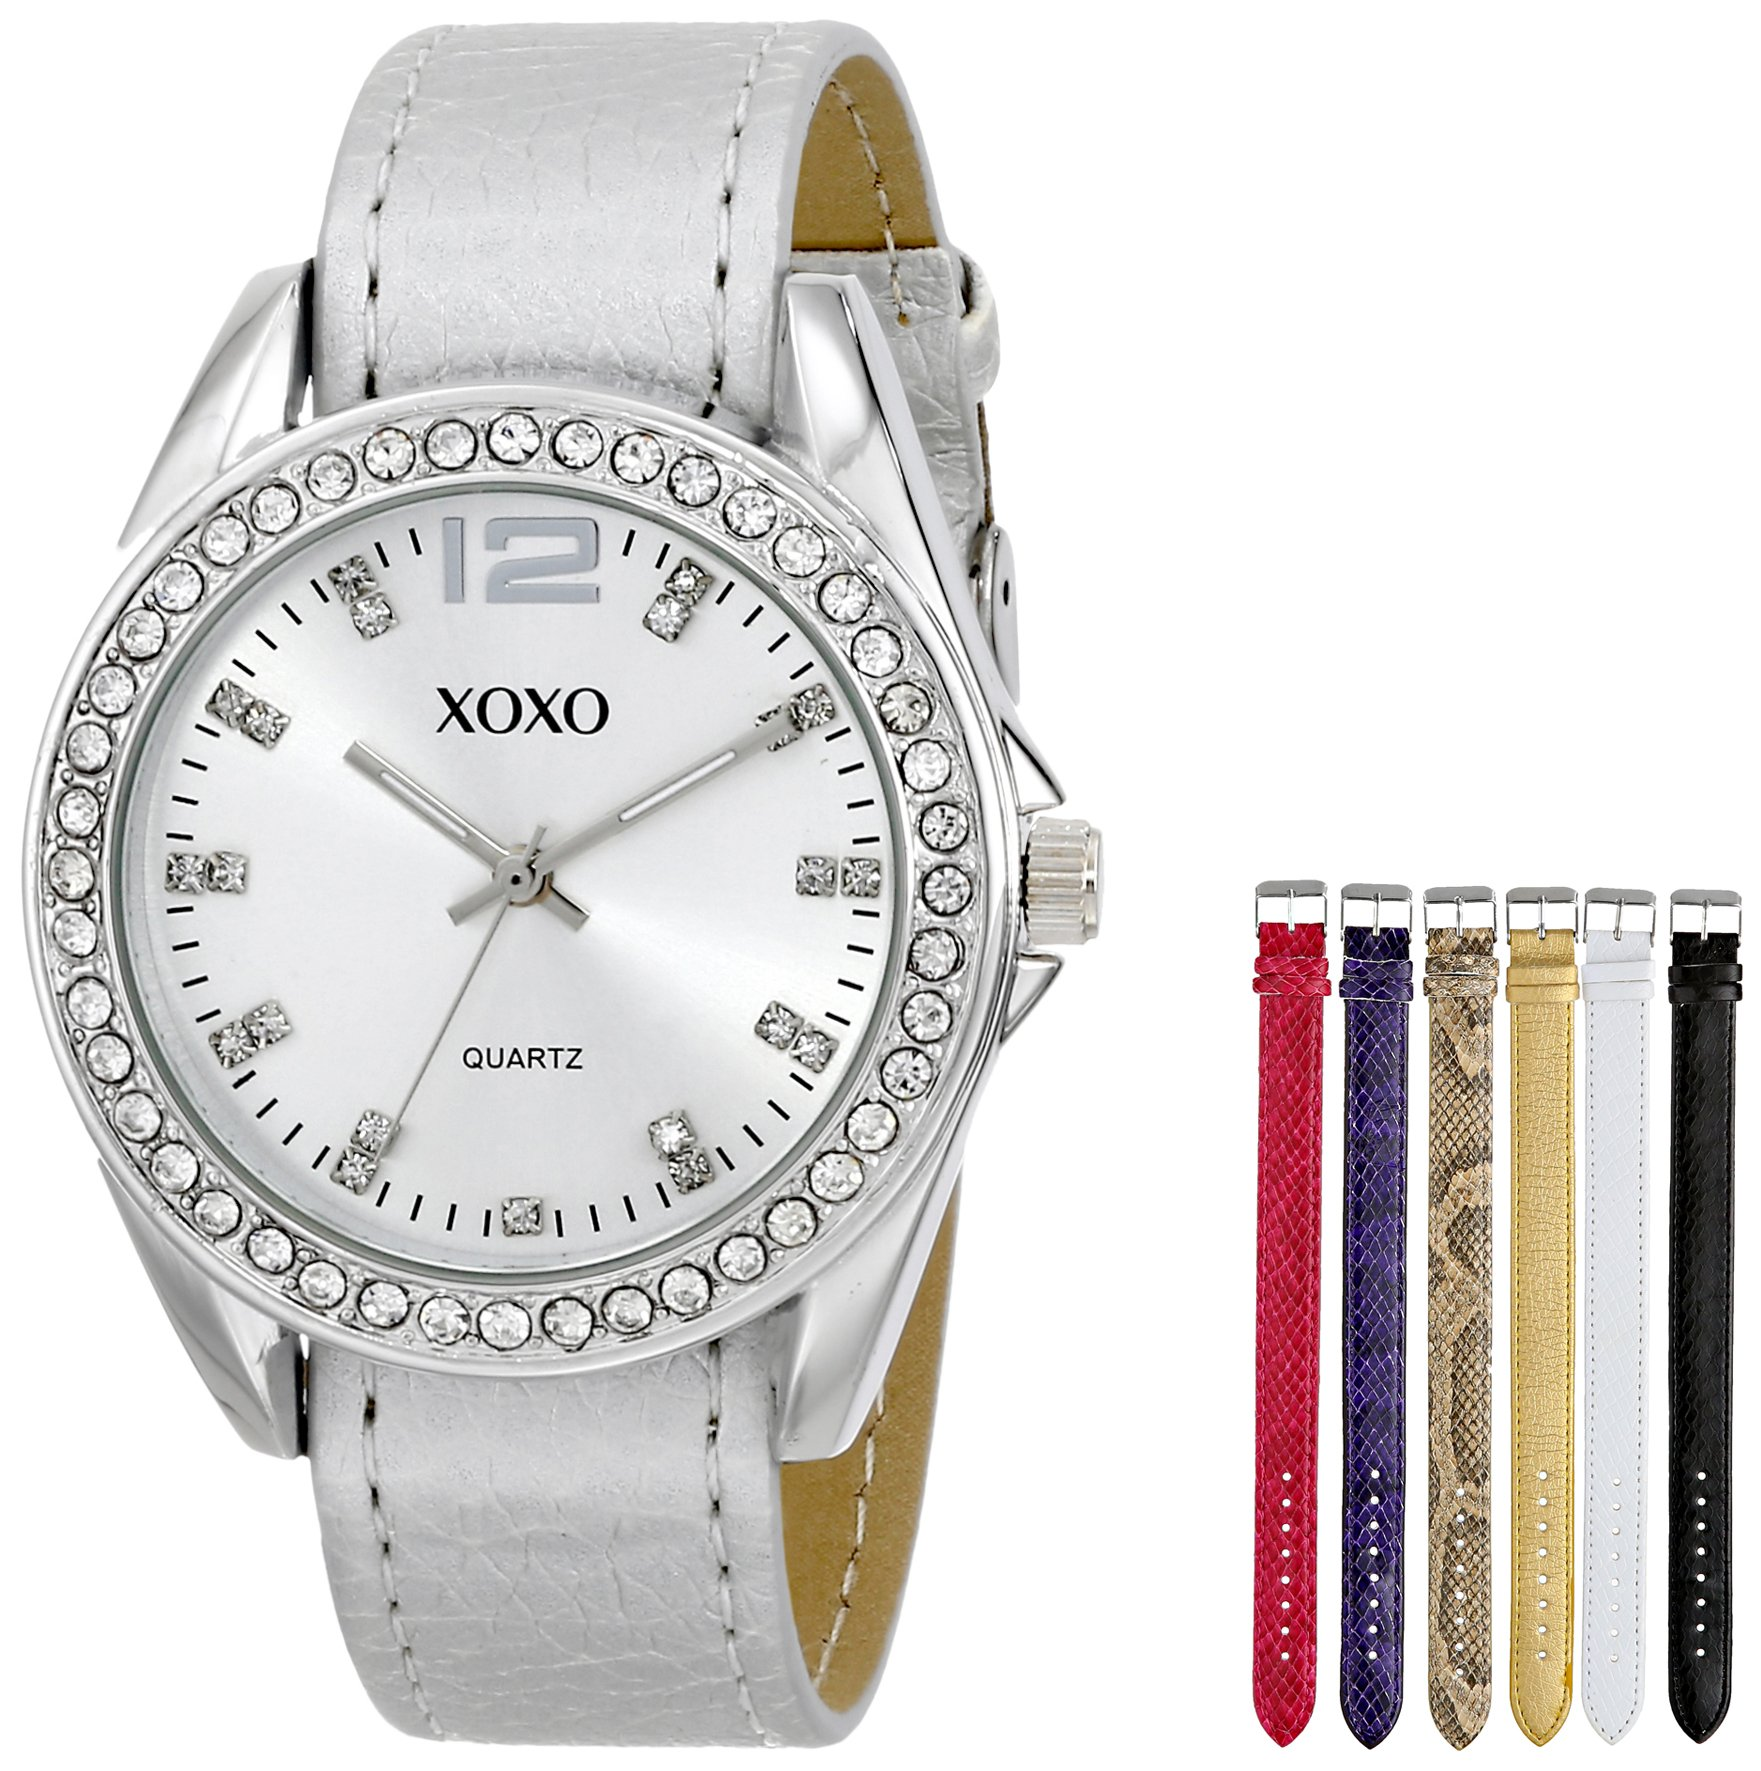 Galleon xoxo women 39 s xo9062 silver tone watch with interchangeable bands for Watches xoxo